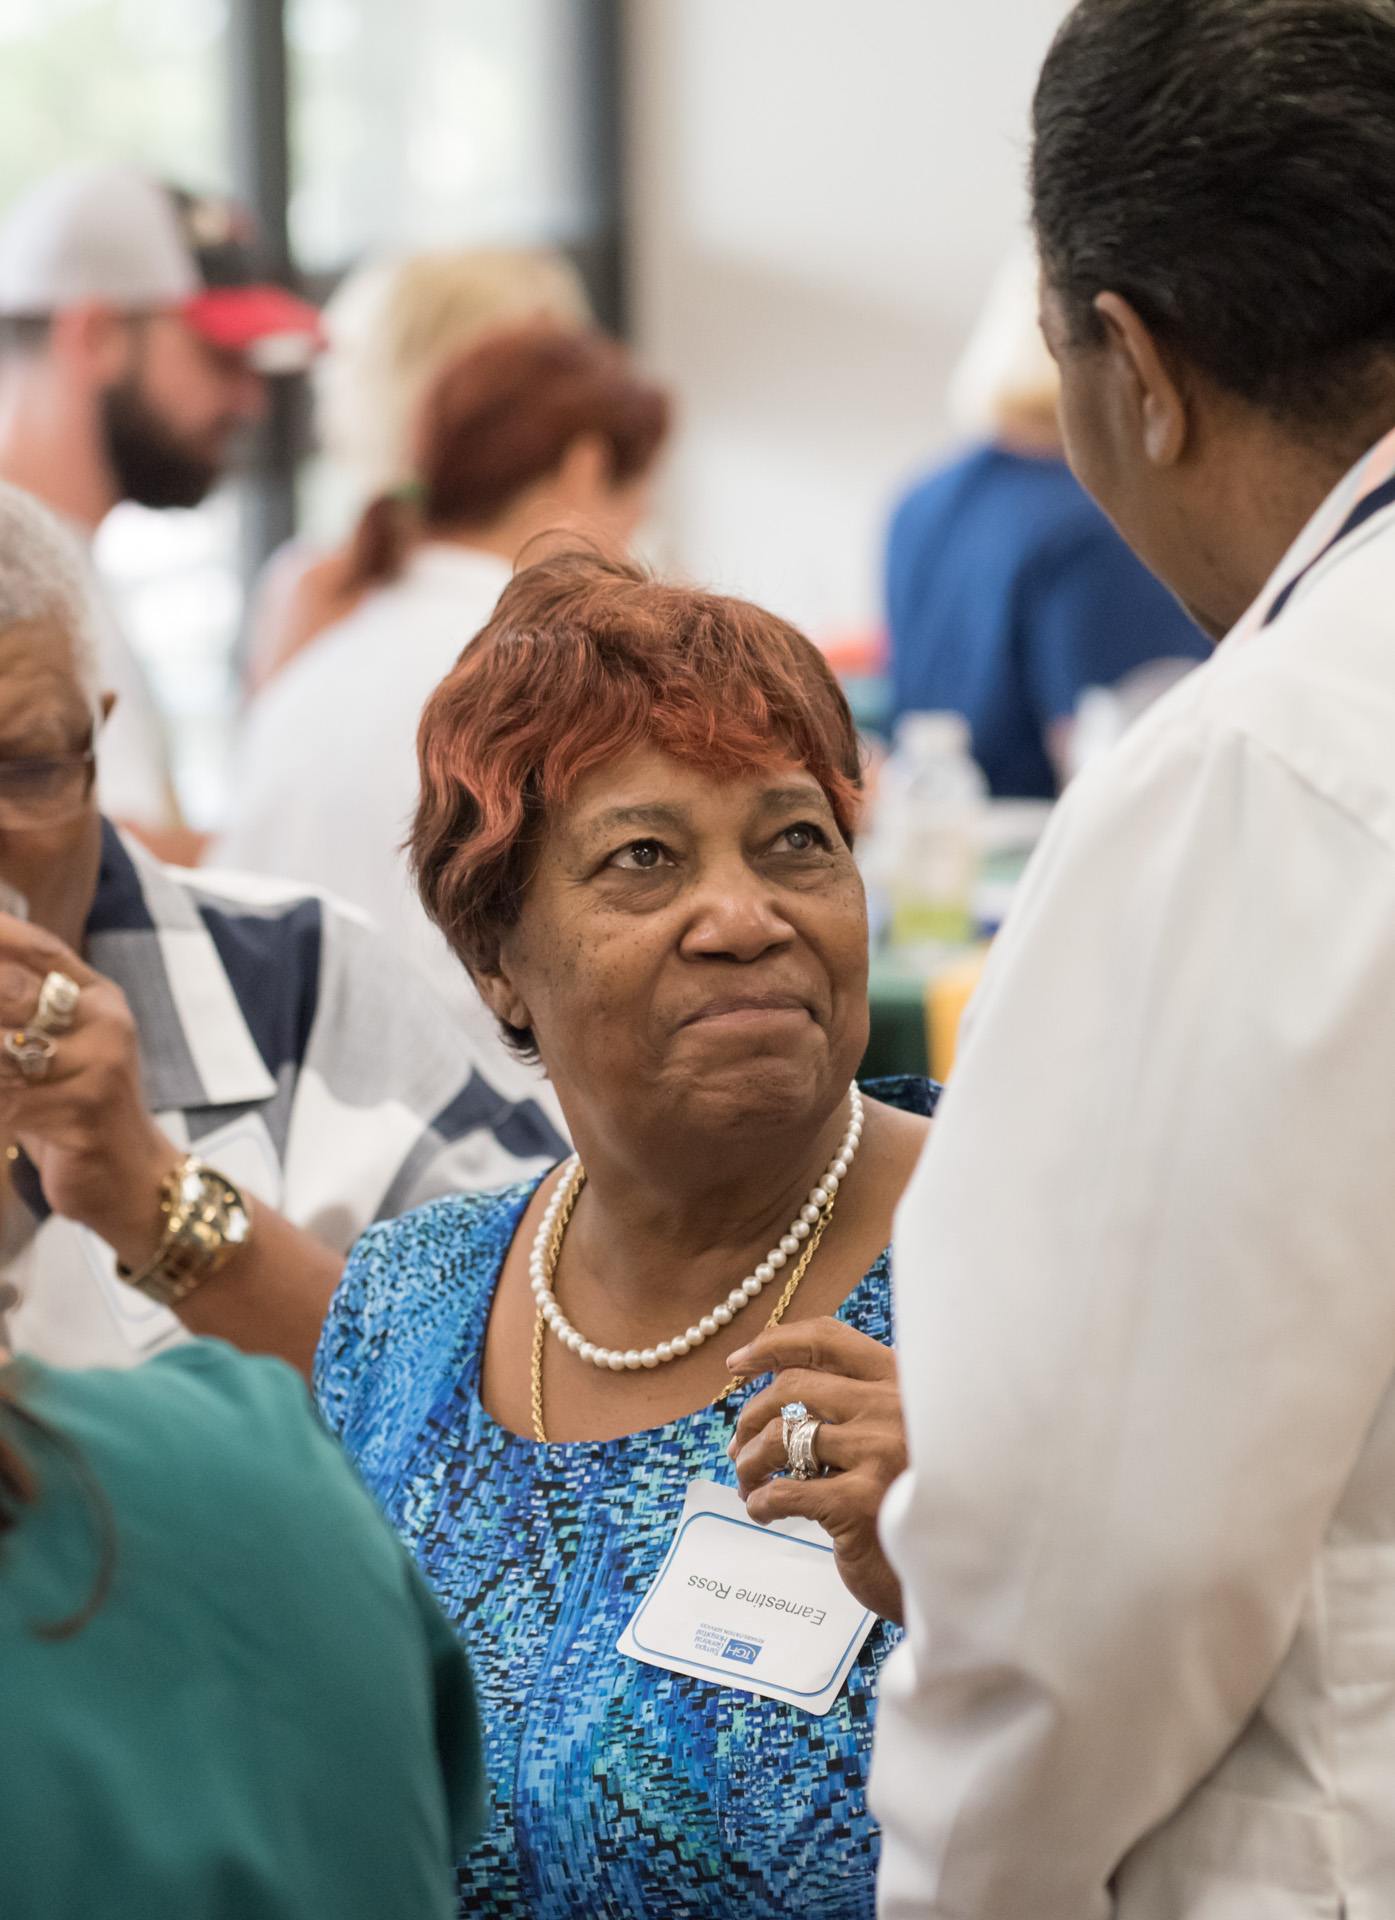 Male physician talking with a female patient at the fall rehab reunion